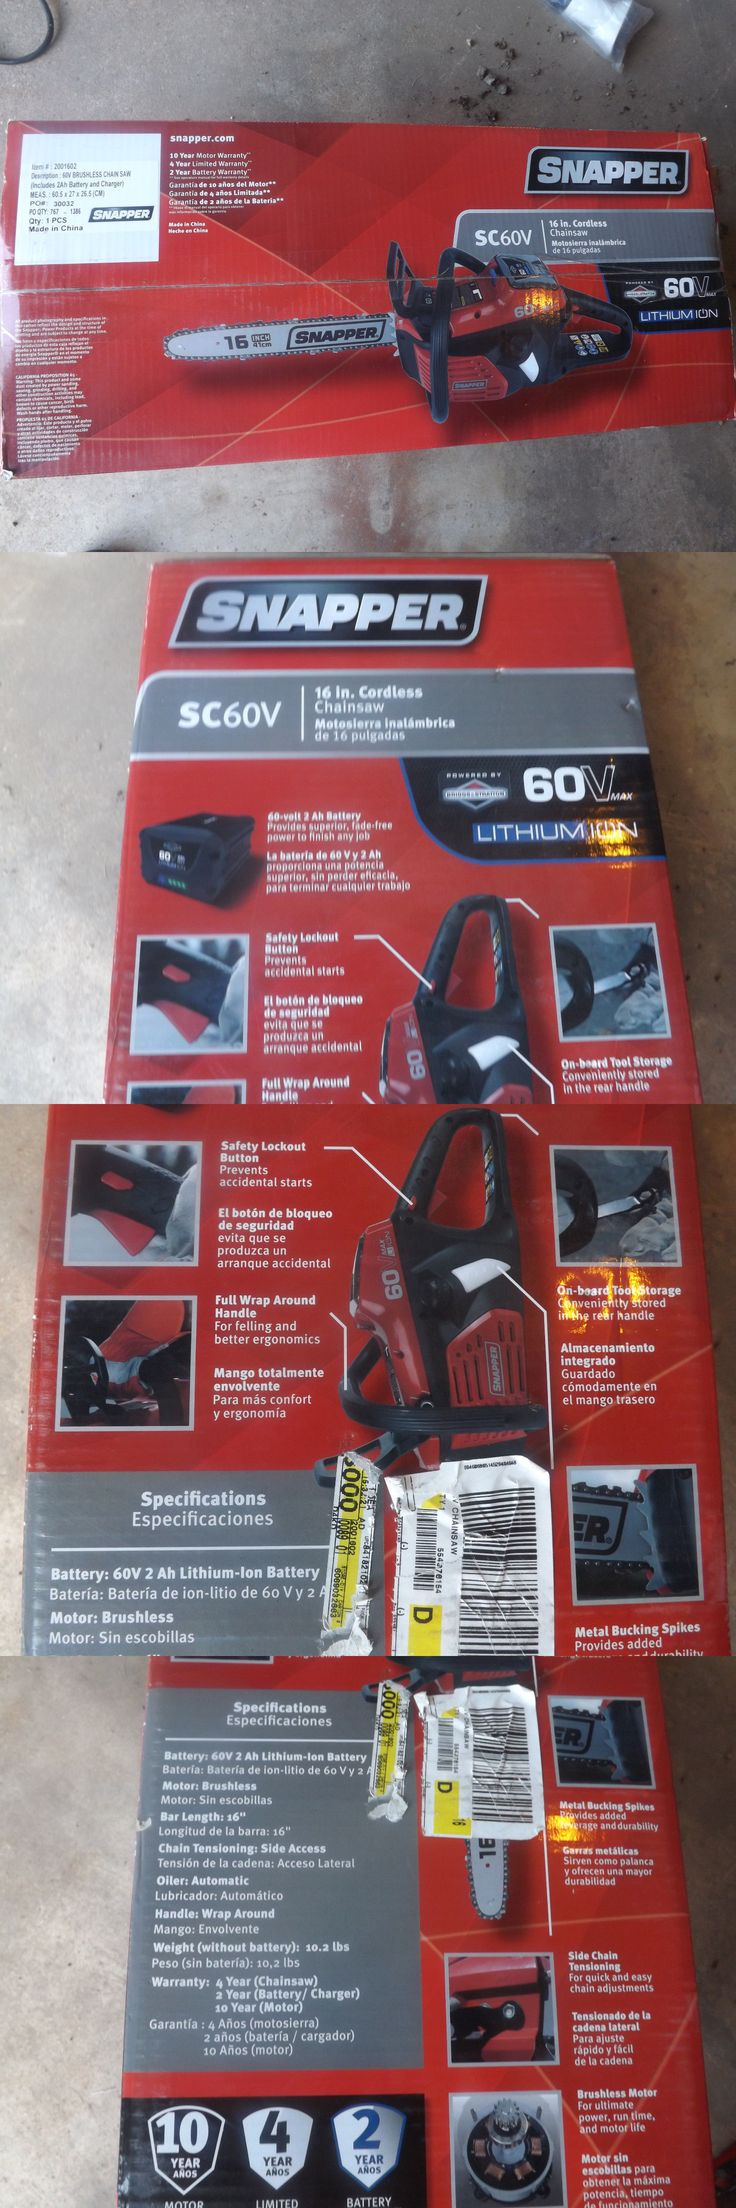 Hedge Trimmers 71268: Snapper Sc60v 60V Chainsaw Includes 2Ah Battery And Charger Brand New -> BUY IT NOW ONLY: $159.95 on eBay!